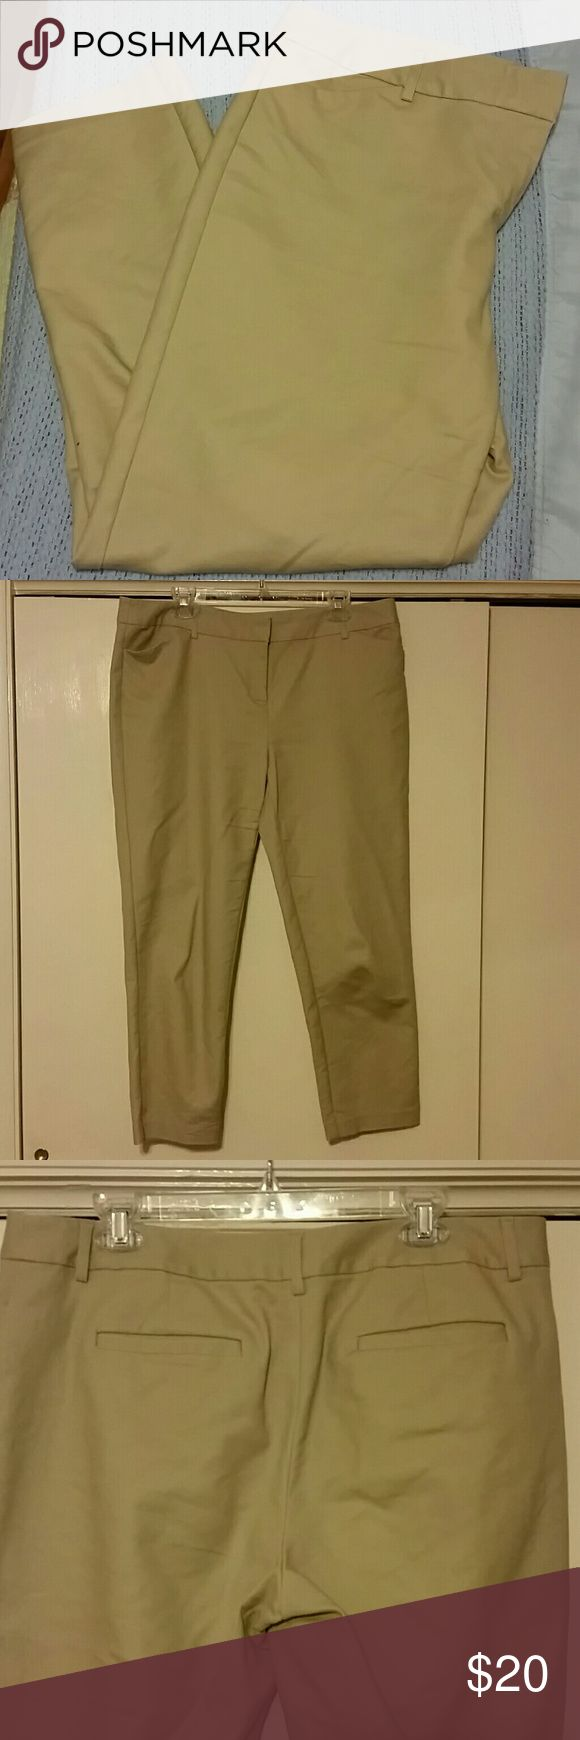 Liz Claiborne Khaki Capris Liz Claiborne Khaki Capris style: Emma. These capris are extremely comfortable and are wonderful for work! They have a clasp closure with an inside button for added closure. Front and back pockets are functional, with the back pockets being more shallow. NOTICE: These pants are more of a lighter tan than the pictures are showing. Liz Claiborne Pants Capris